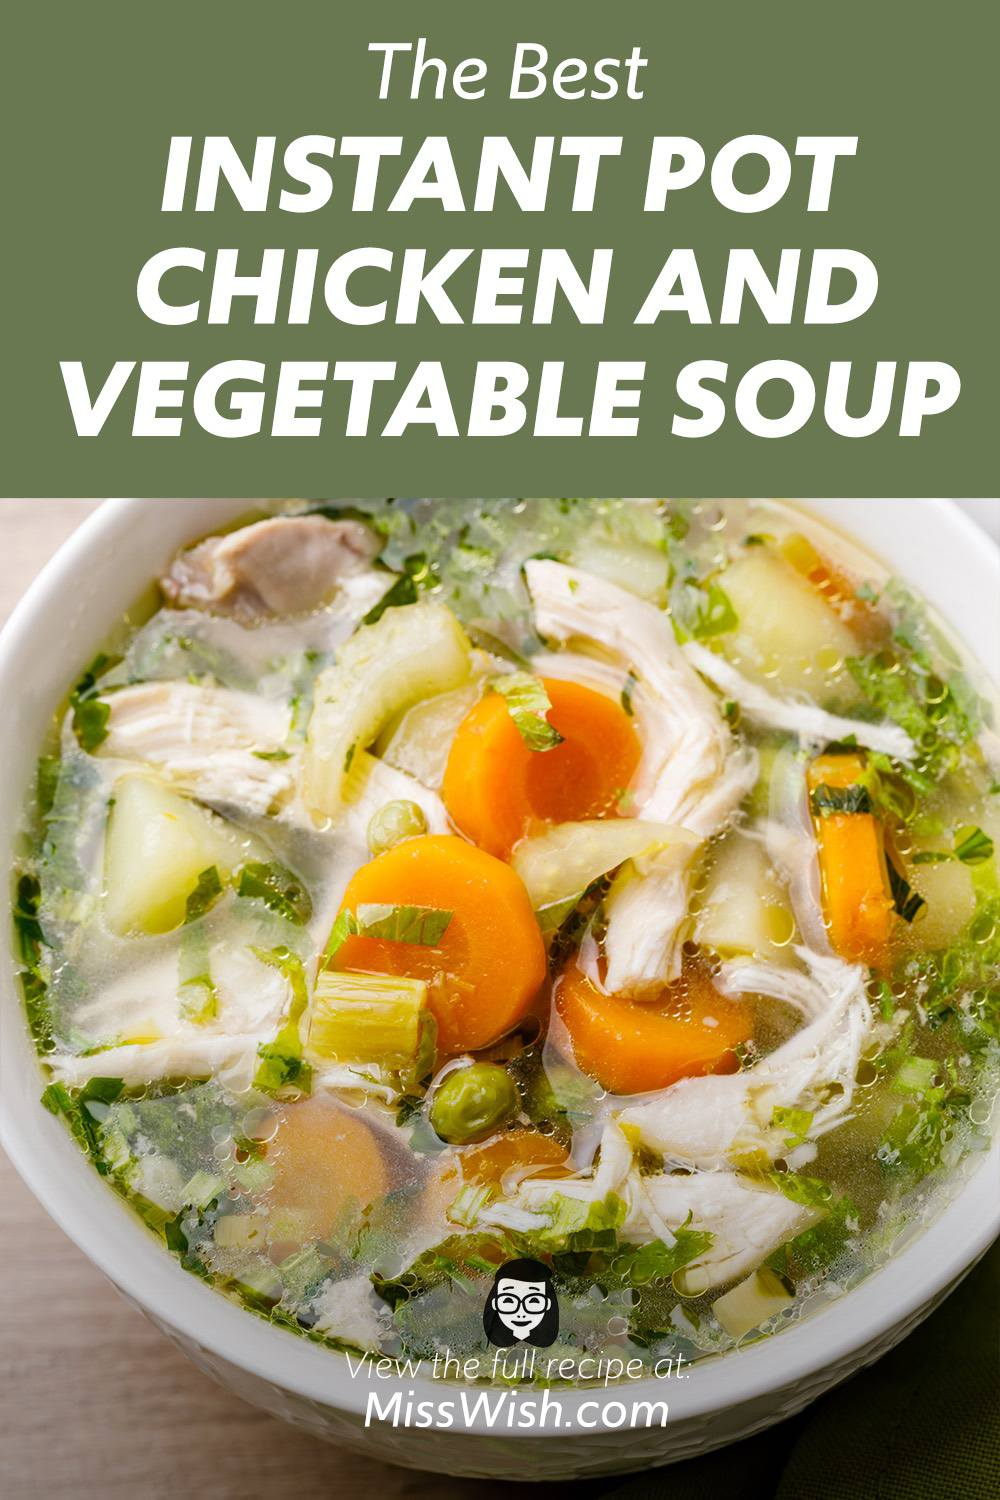 Homemade Instant Pot Chicken and Vegetable Soup